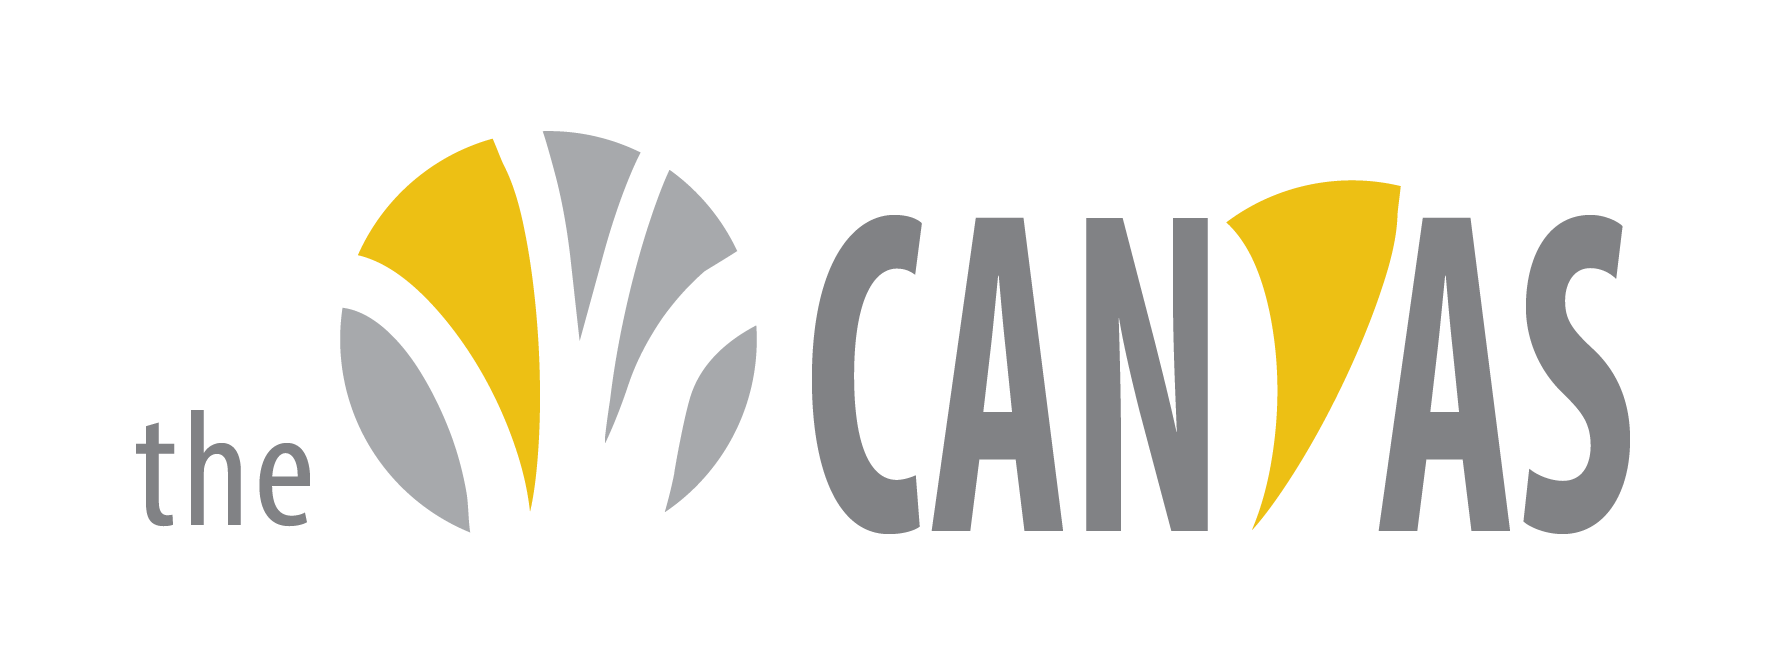 Sample The Canvas Logos_1_Yellow-Grey -2.png